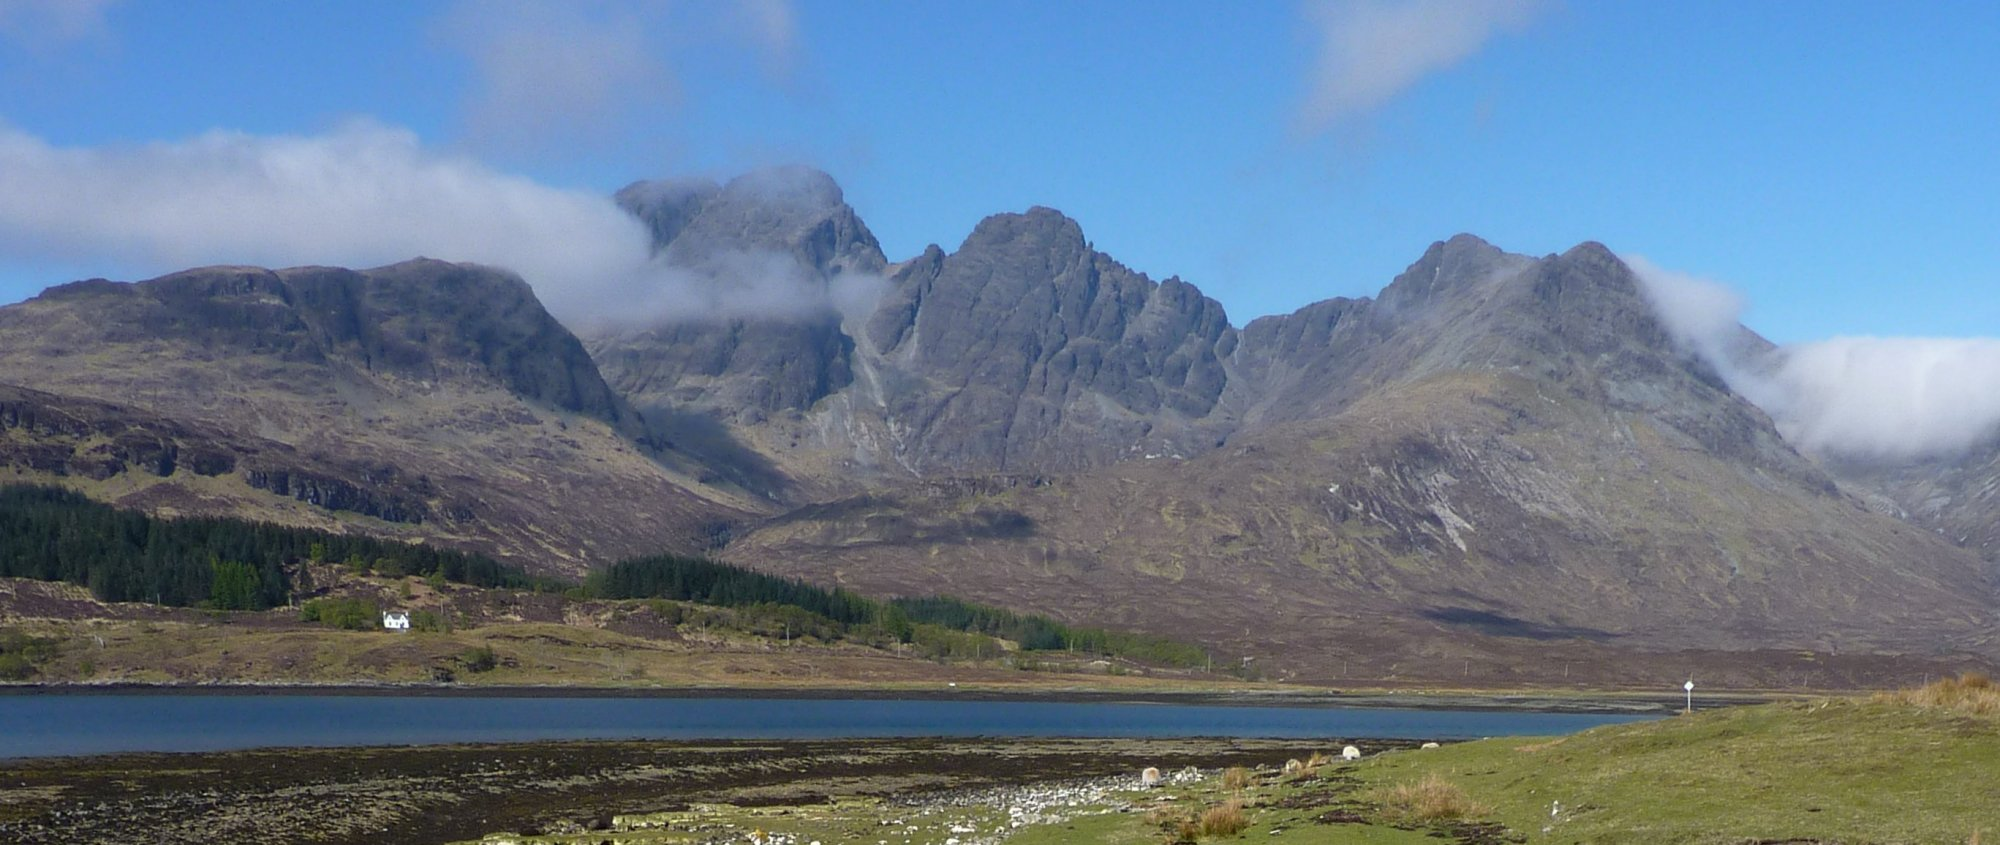 Bla Bheinn from the outskirts of Torrin